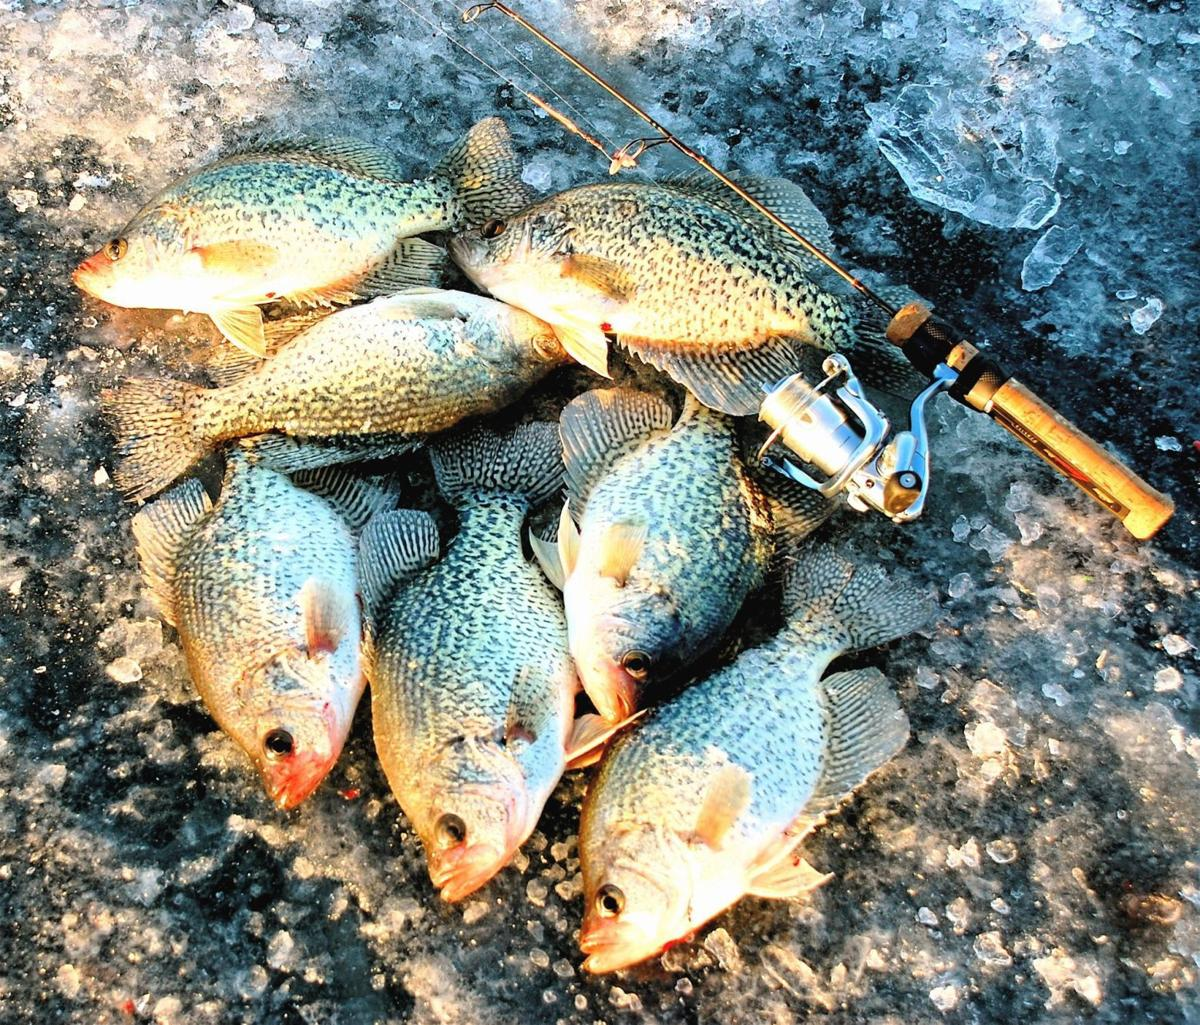 MYHRE: Catch 'happy hour' farm pond crappies | Outdoors